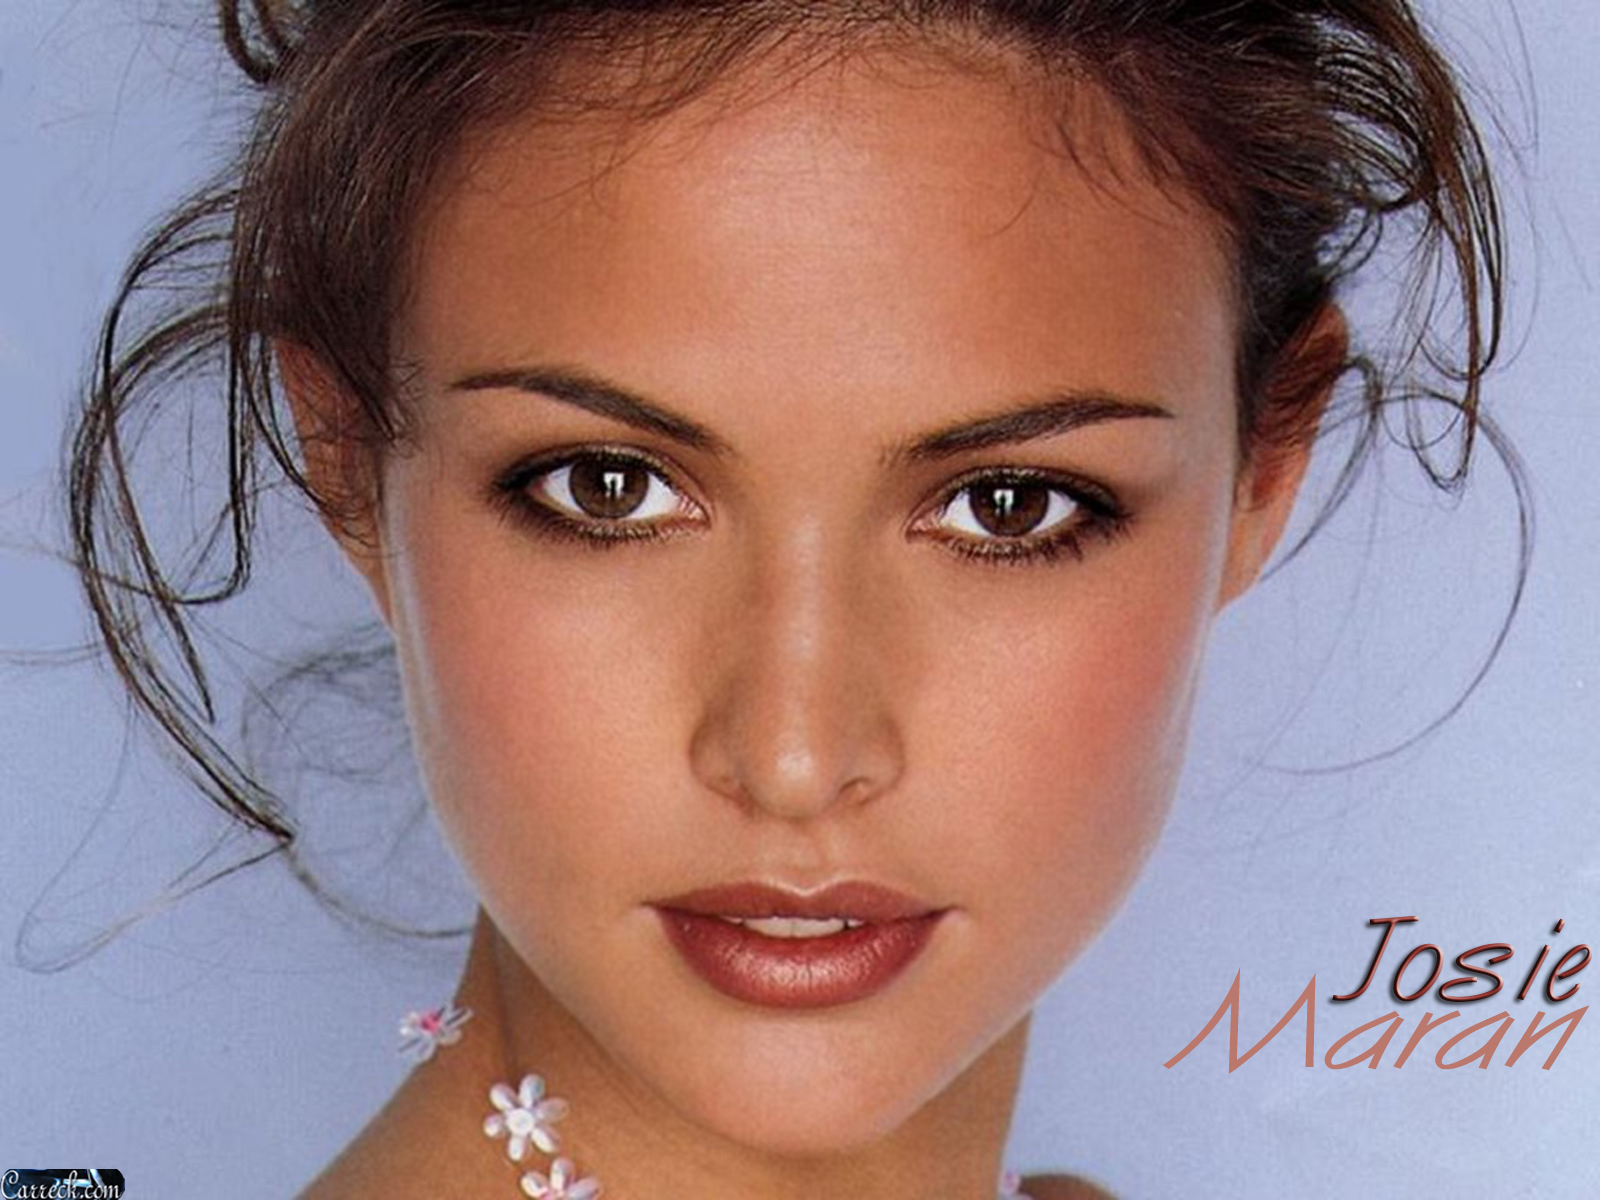 Josie Maran - Wallpaper